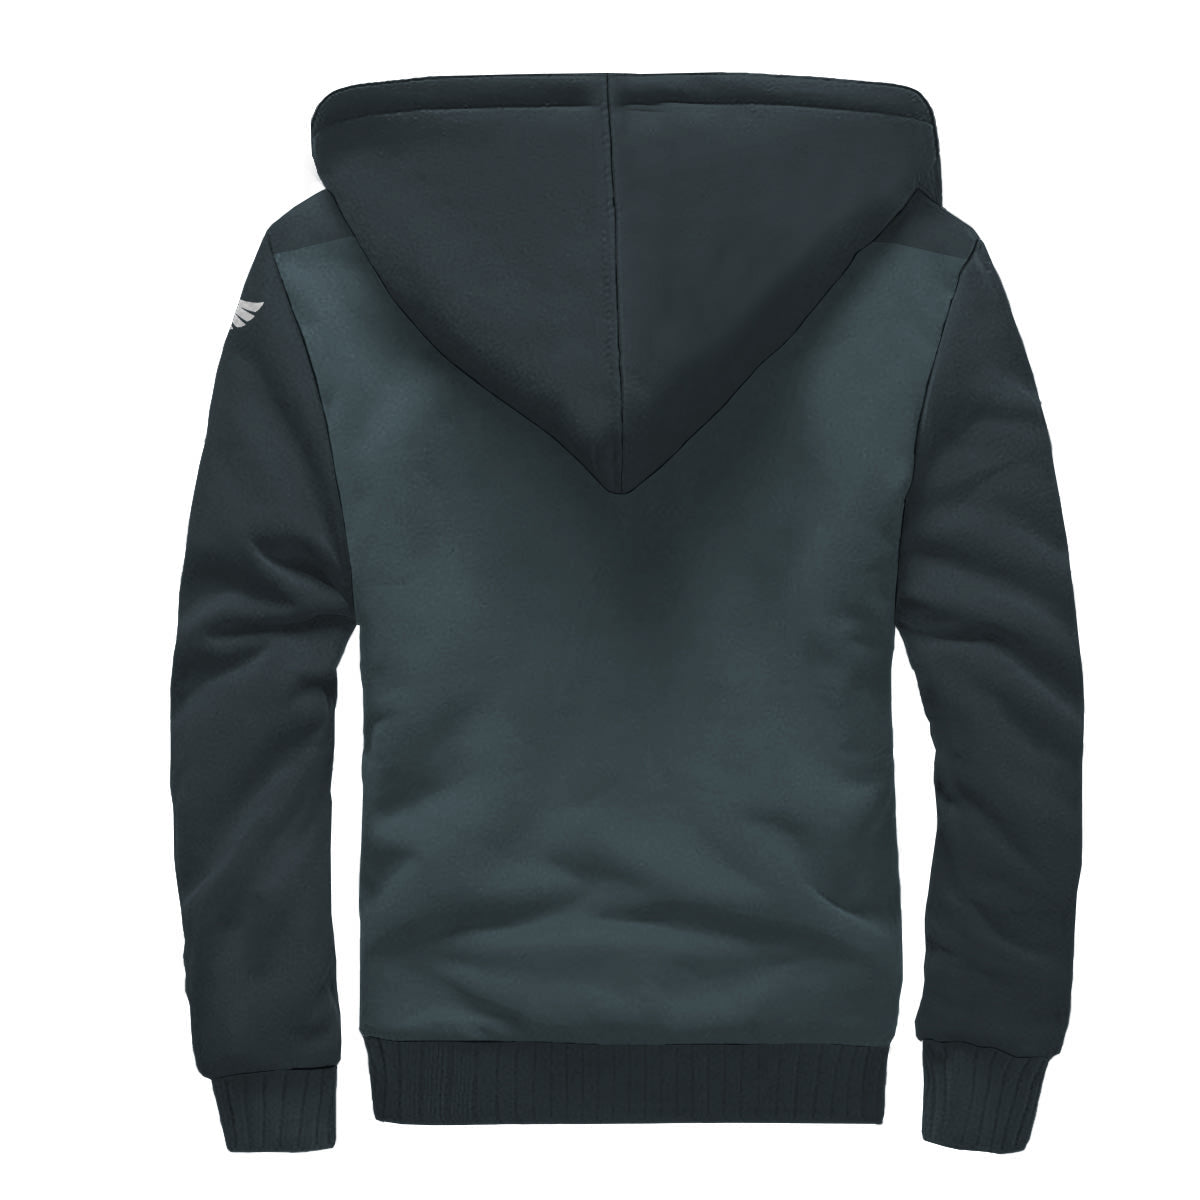 Find Your Coast Colorblock Sherpa Lined Zip Up Hoodie - Find Your Coast Supply Co.